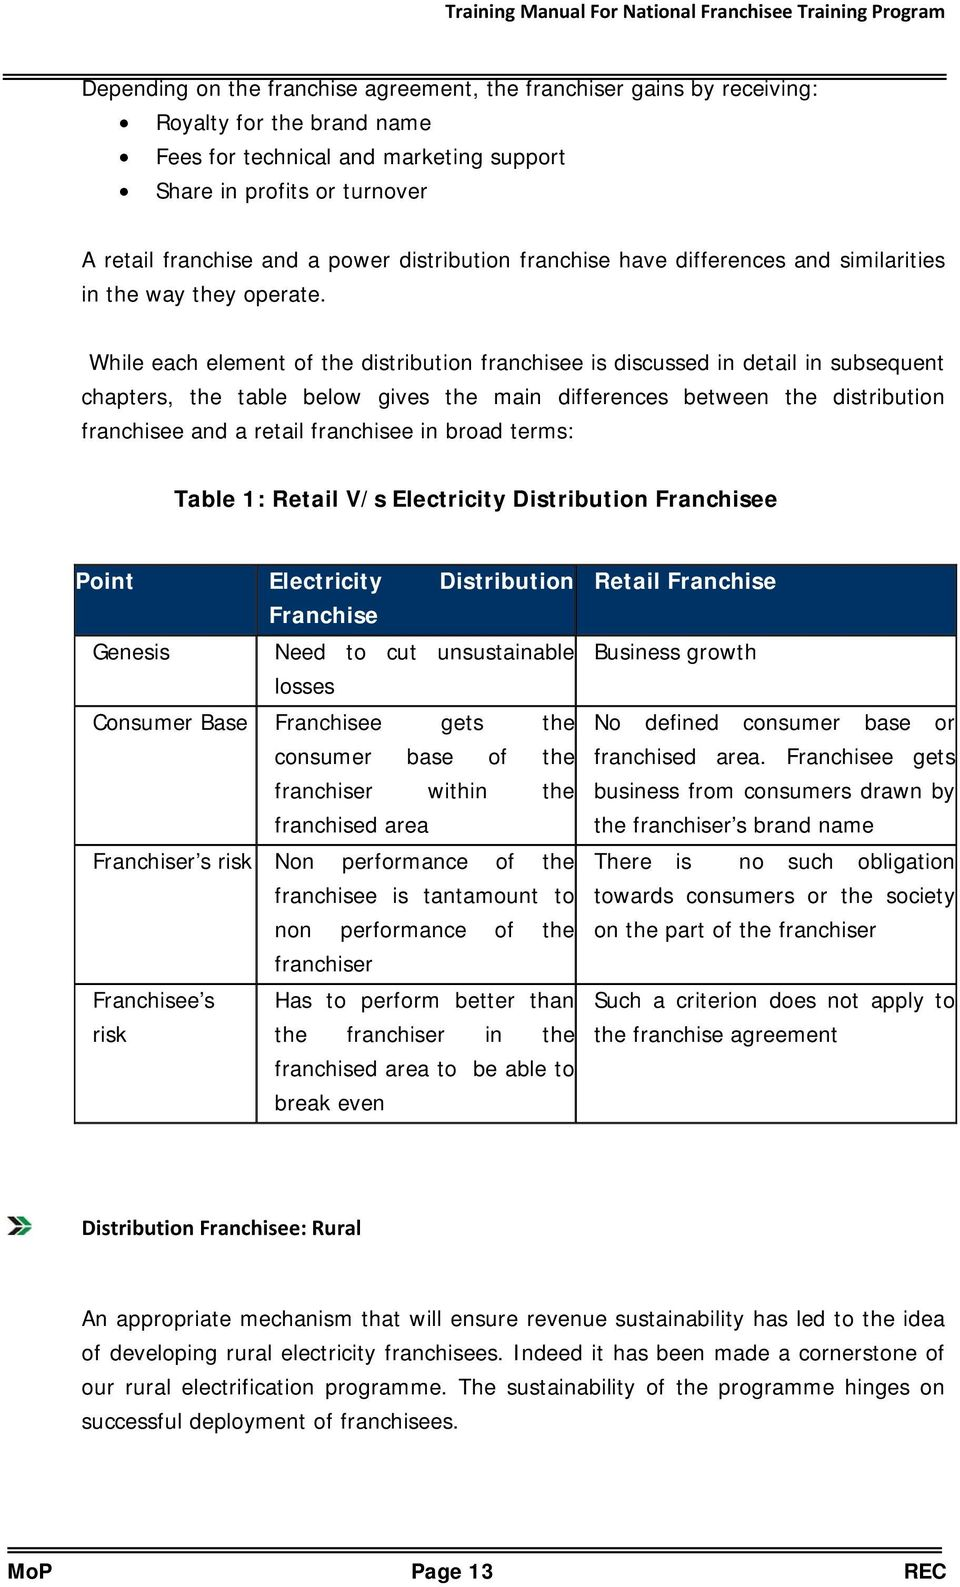 While each element of the distribution franchisee is discussed in detail in subsequent chapters, the table below gives the main differences between the distribution franchisee and a retail franchisee